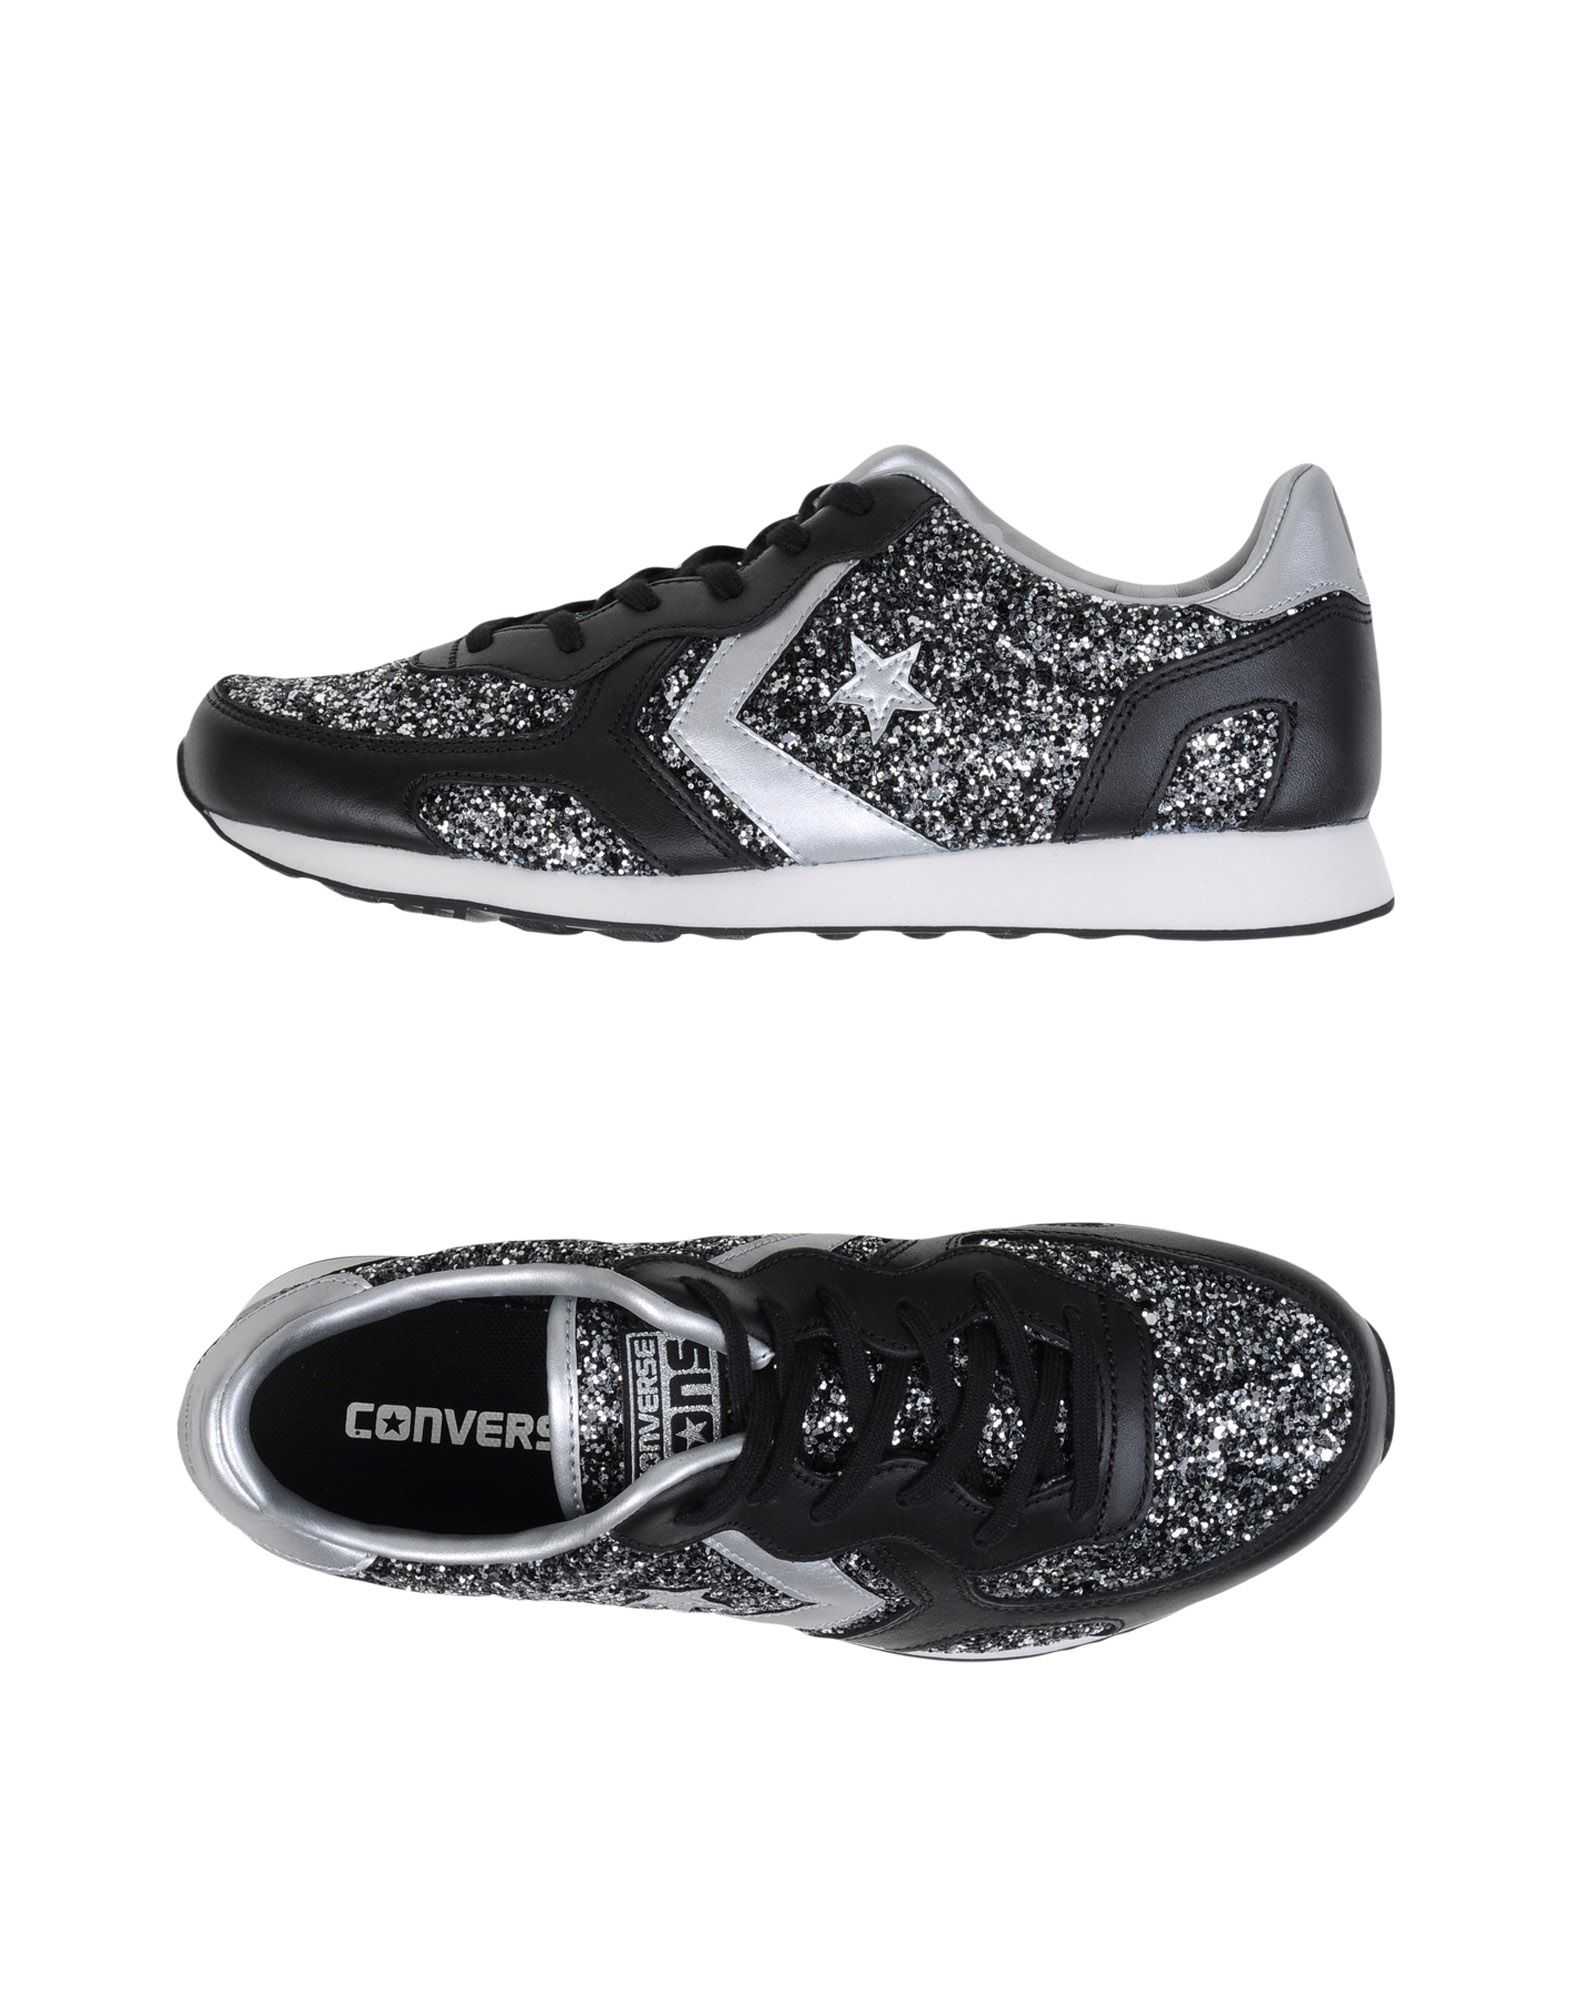 Sneakers Converse Cons Auckland Racer Ox Glitter/Leat - Donna - Acquista online su